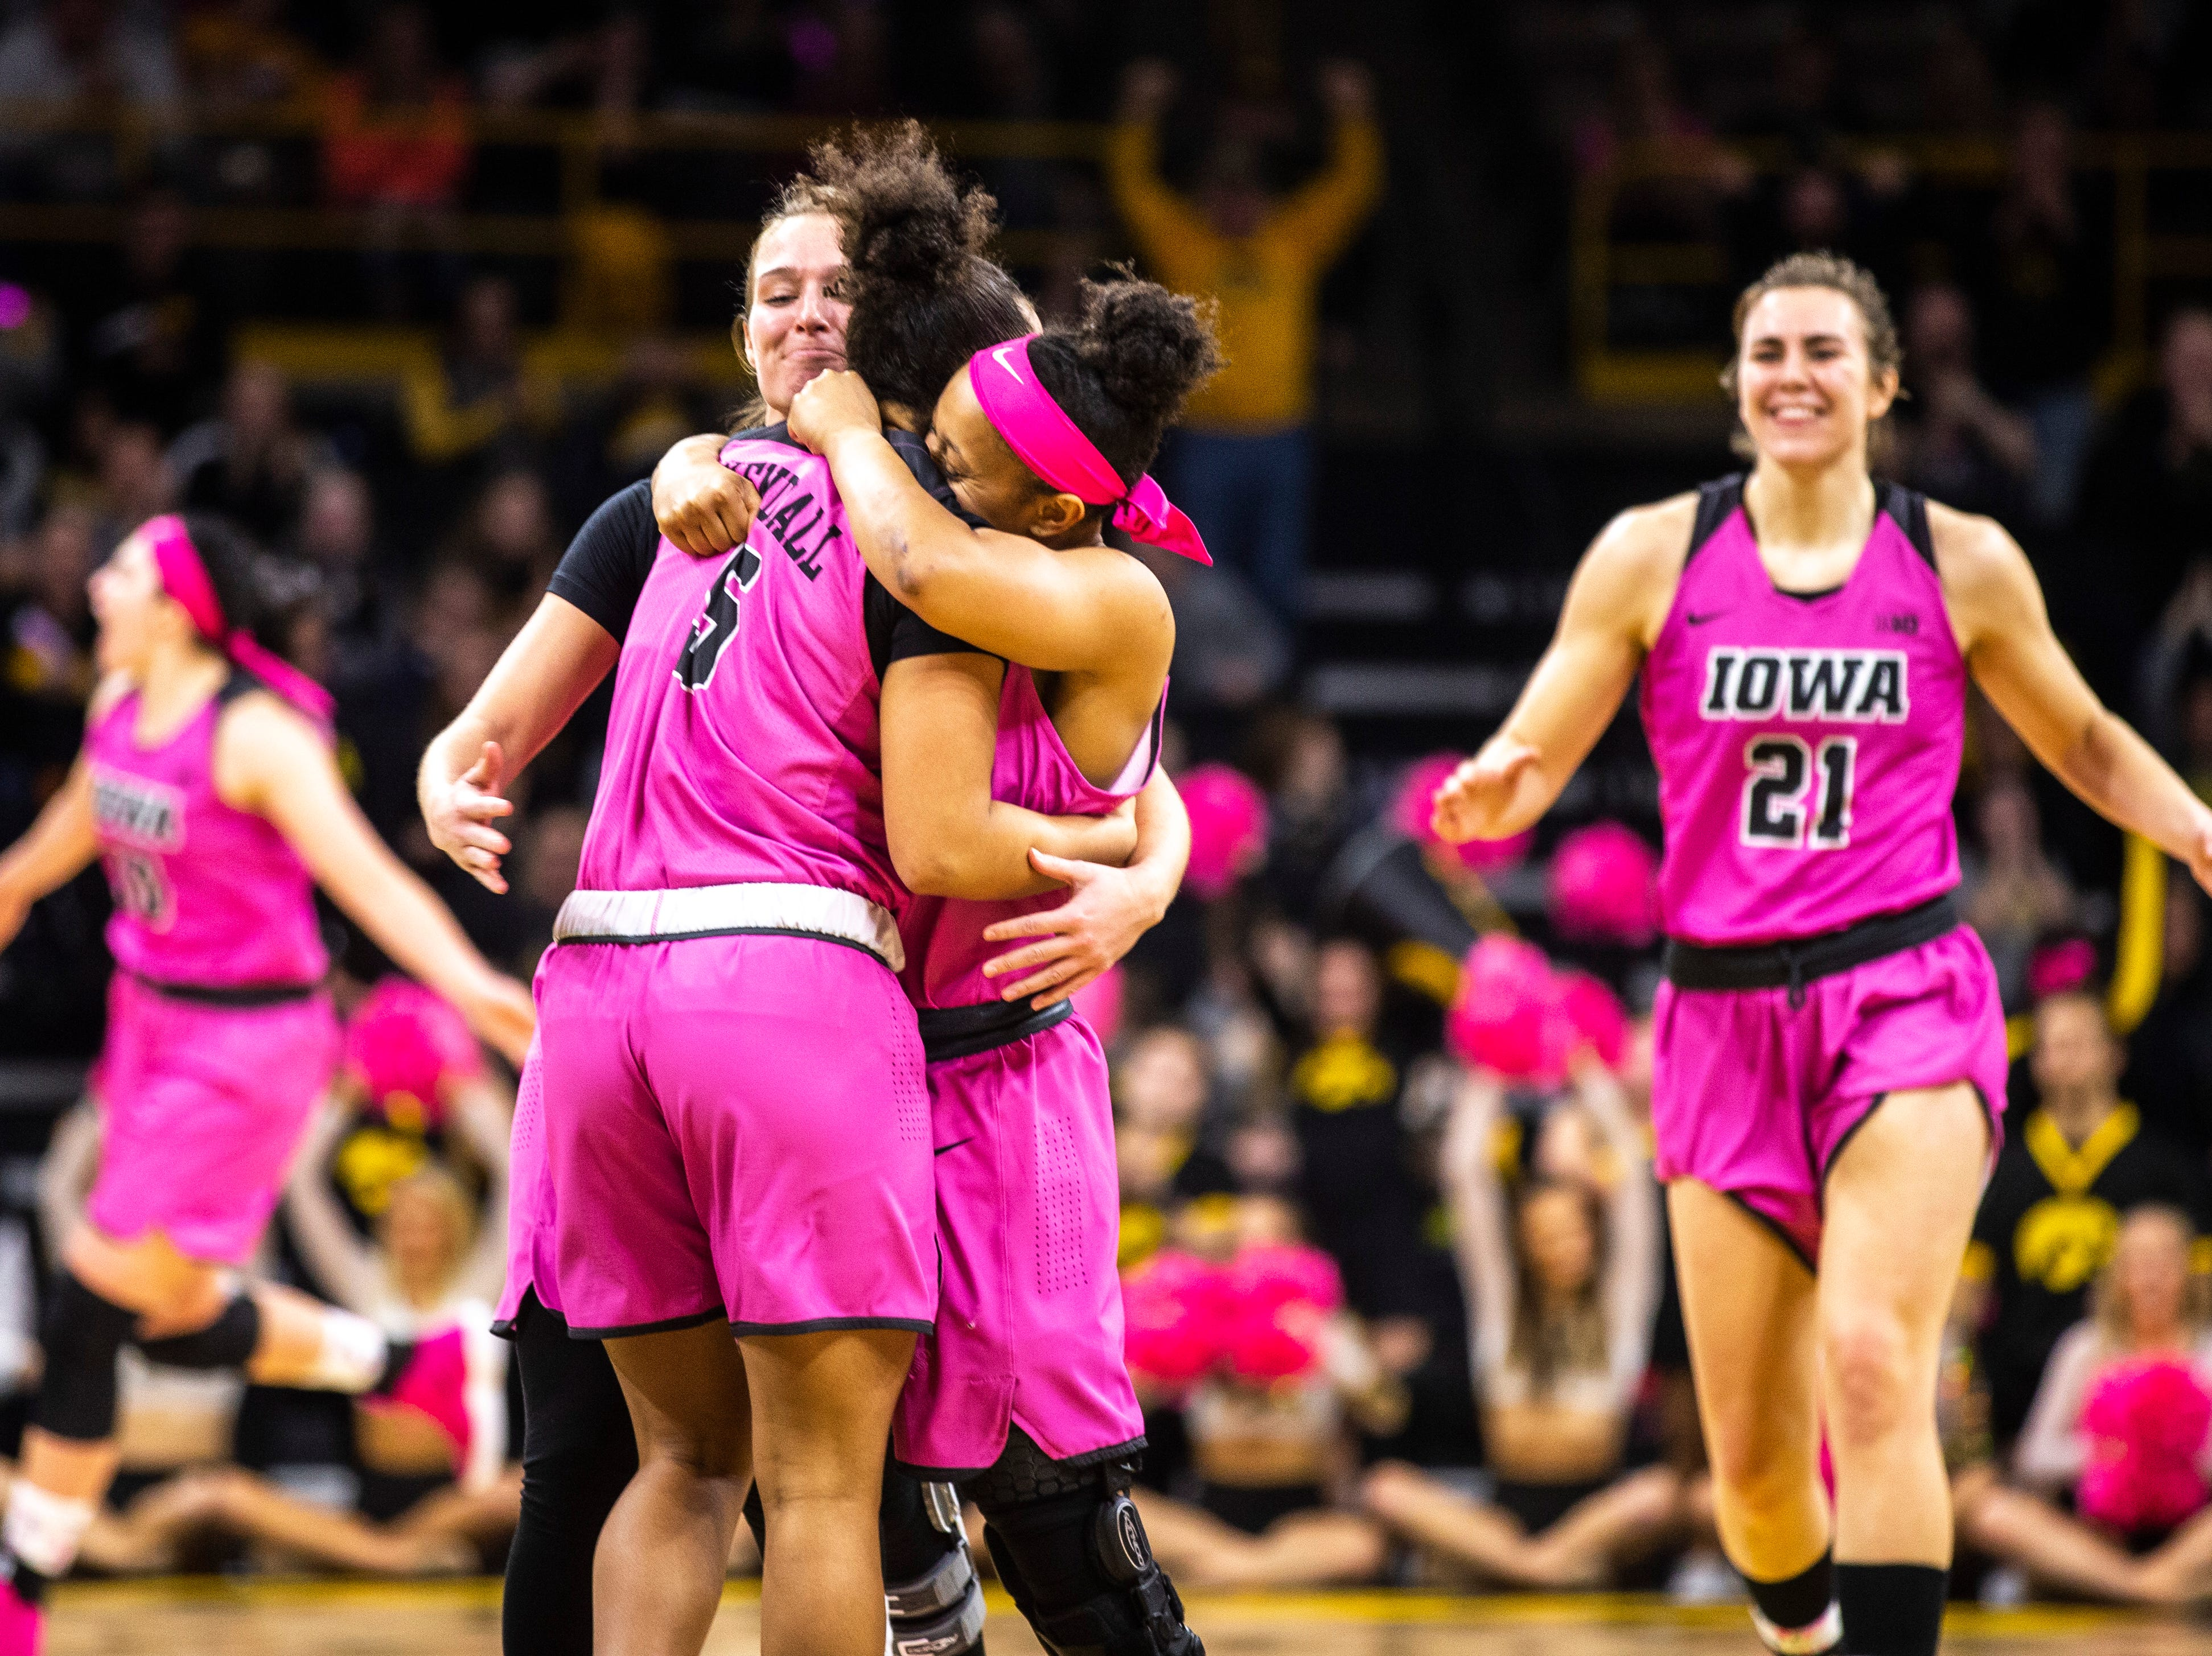 Iowa guard Alexis Sevillian (5) gets embraced by Iowa guard Tania Davis after making a 3-point basket during a NCAA Big Ten Conference women's basketball game on Sunday, Feb. 17, 2019 at Carver-Hawkeye Arena in Iowa City, Iowa.